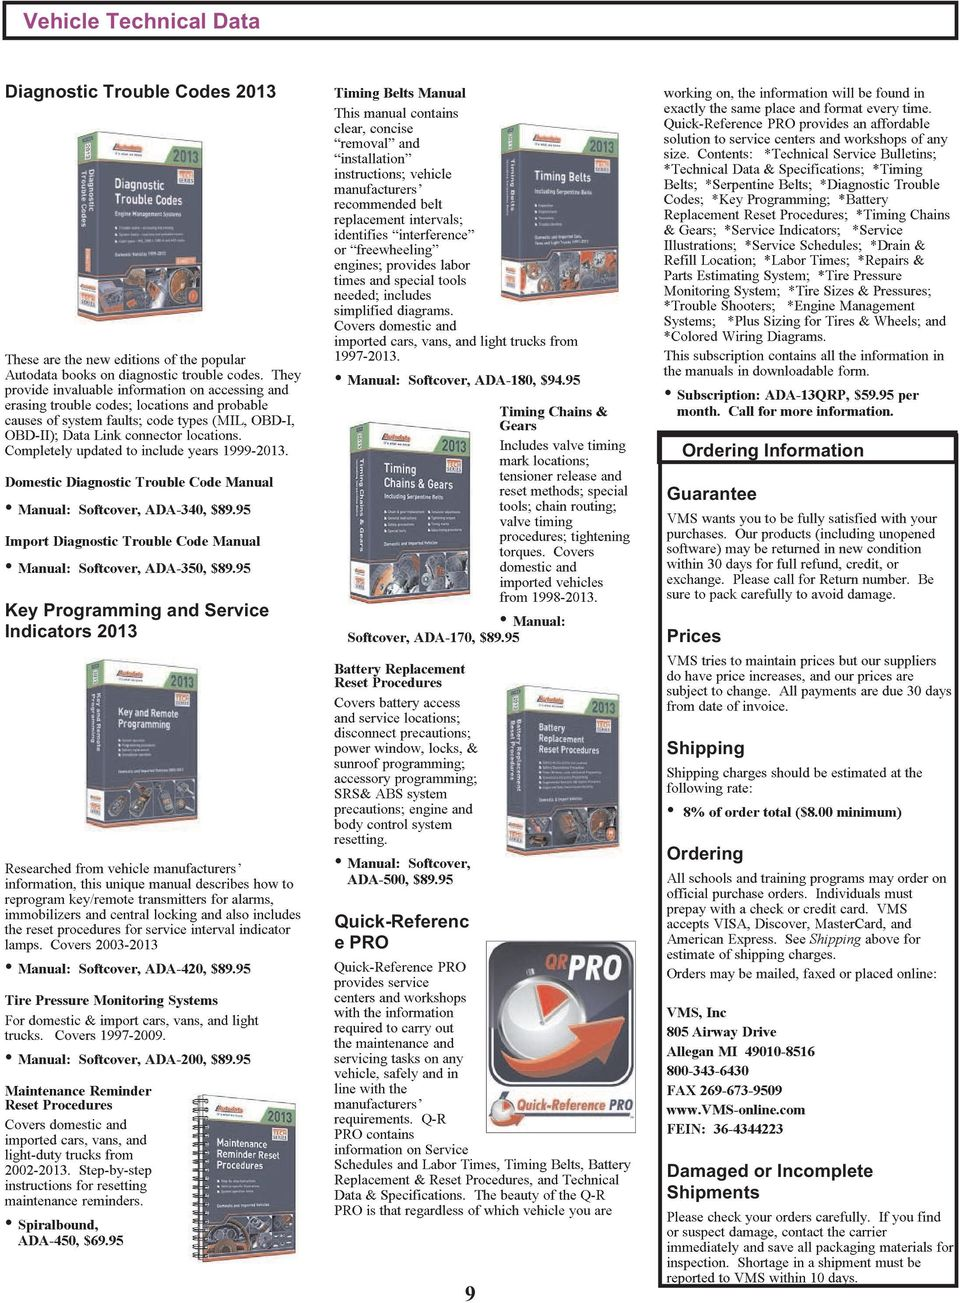 Completely updated to include years 1999-2013. Domestic Diagnostic Trouble  Code Manual Manual: